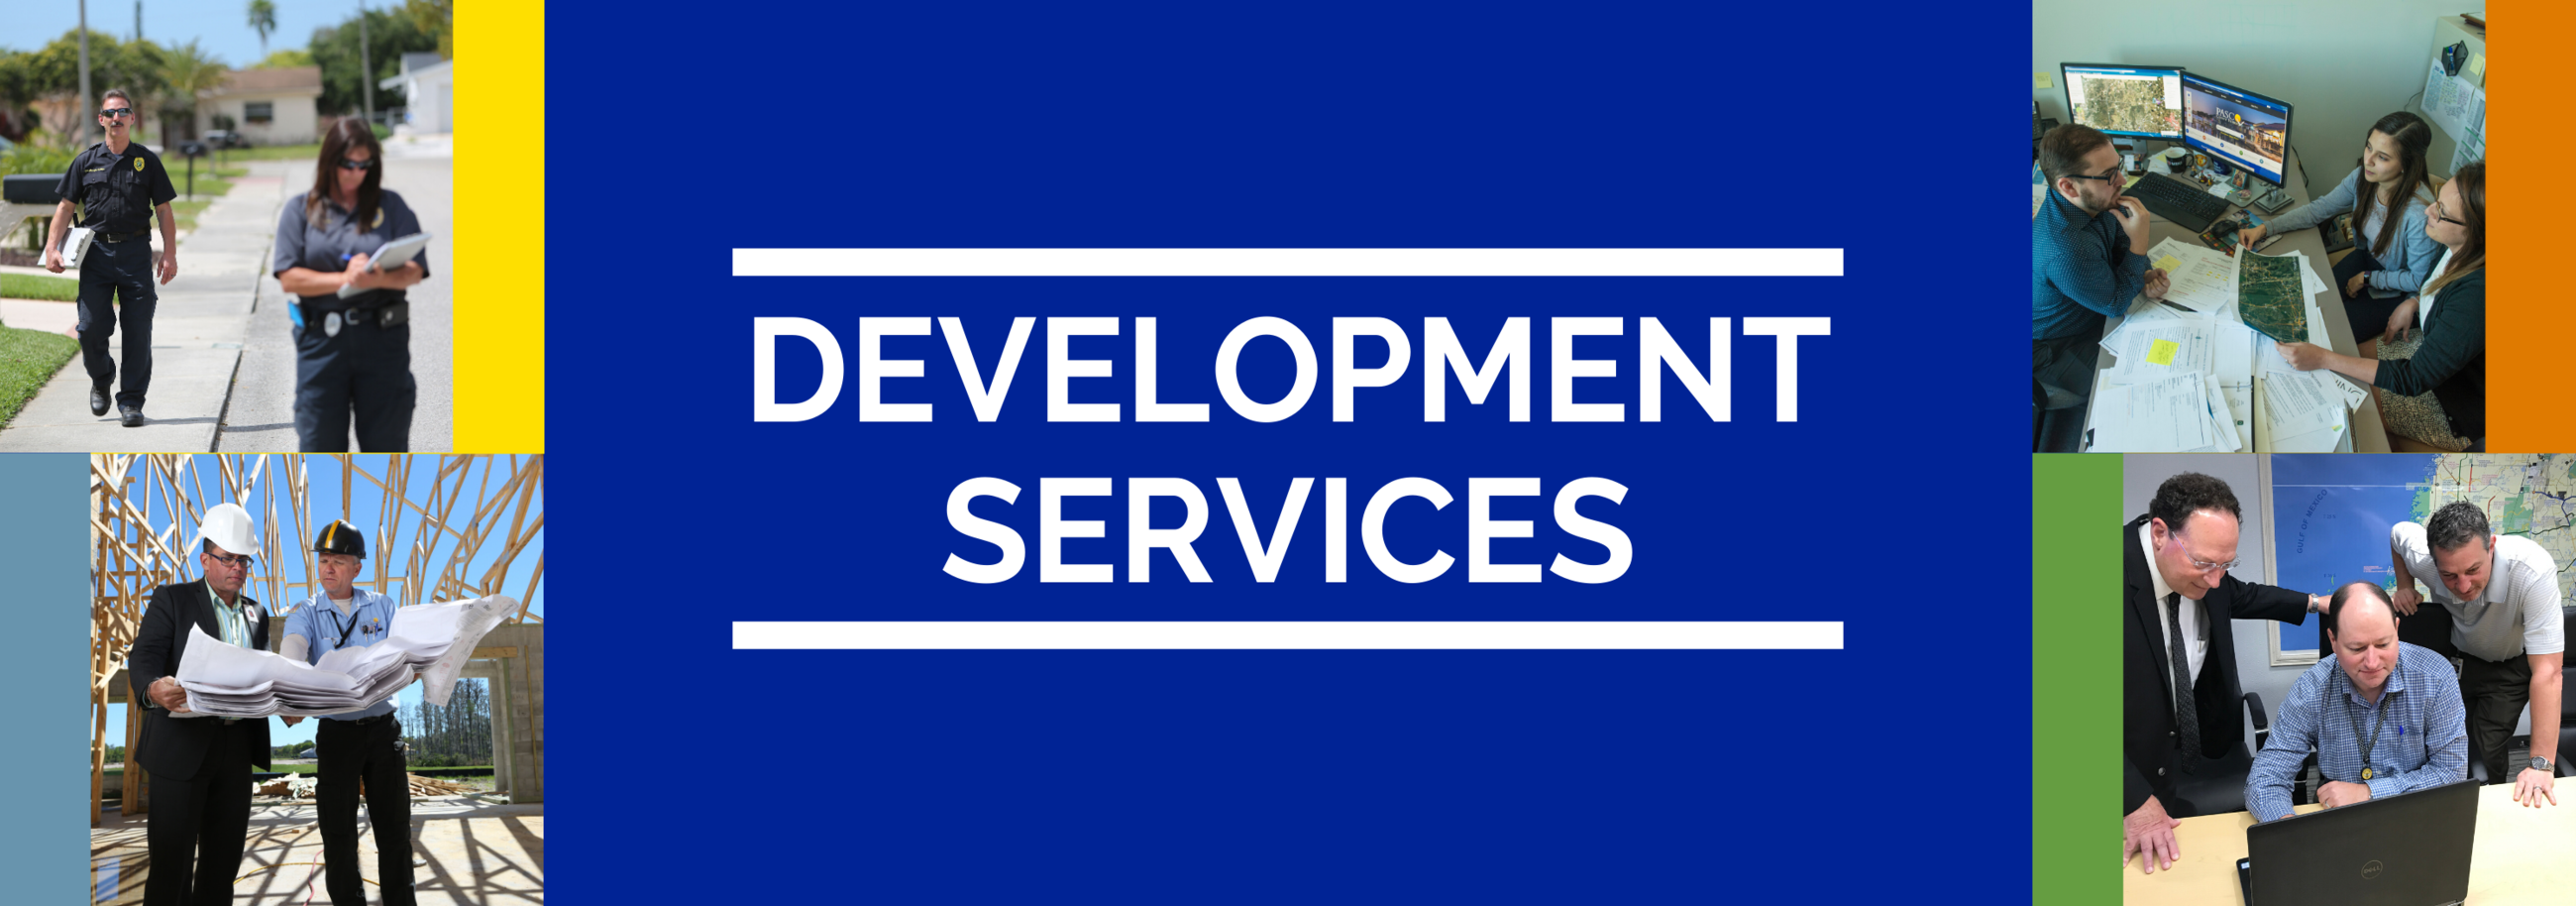 Development Services banner